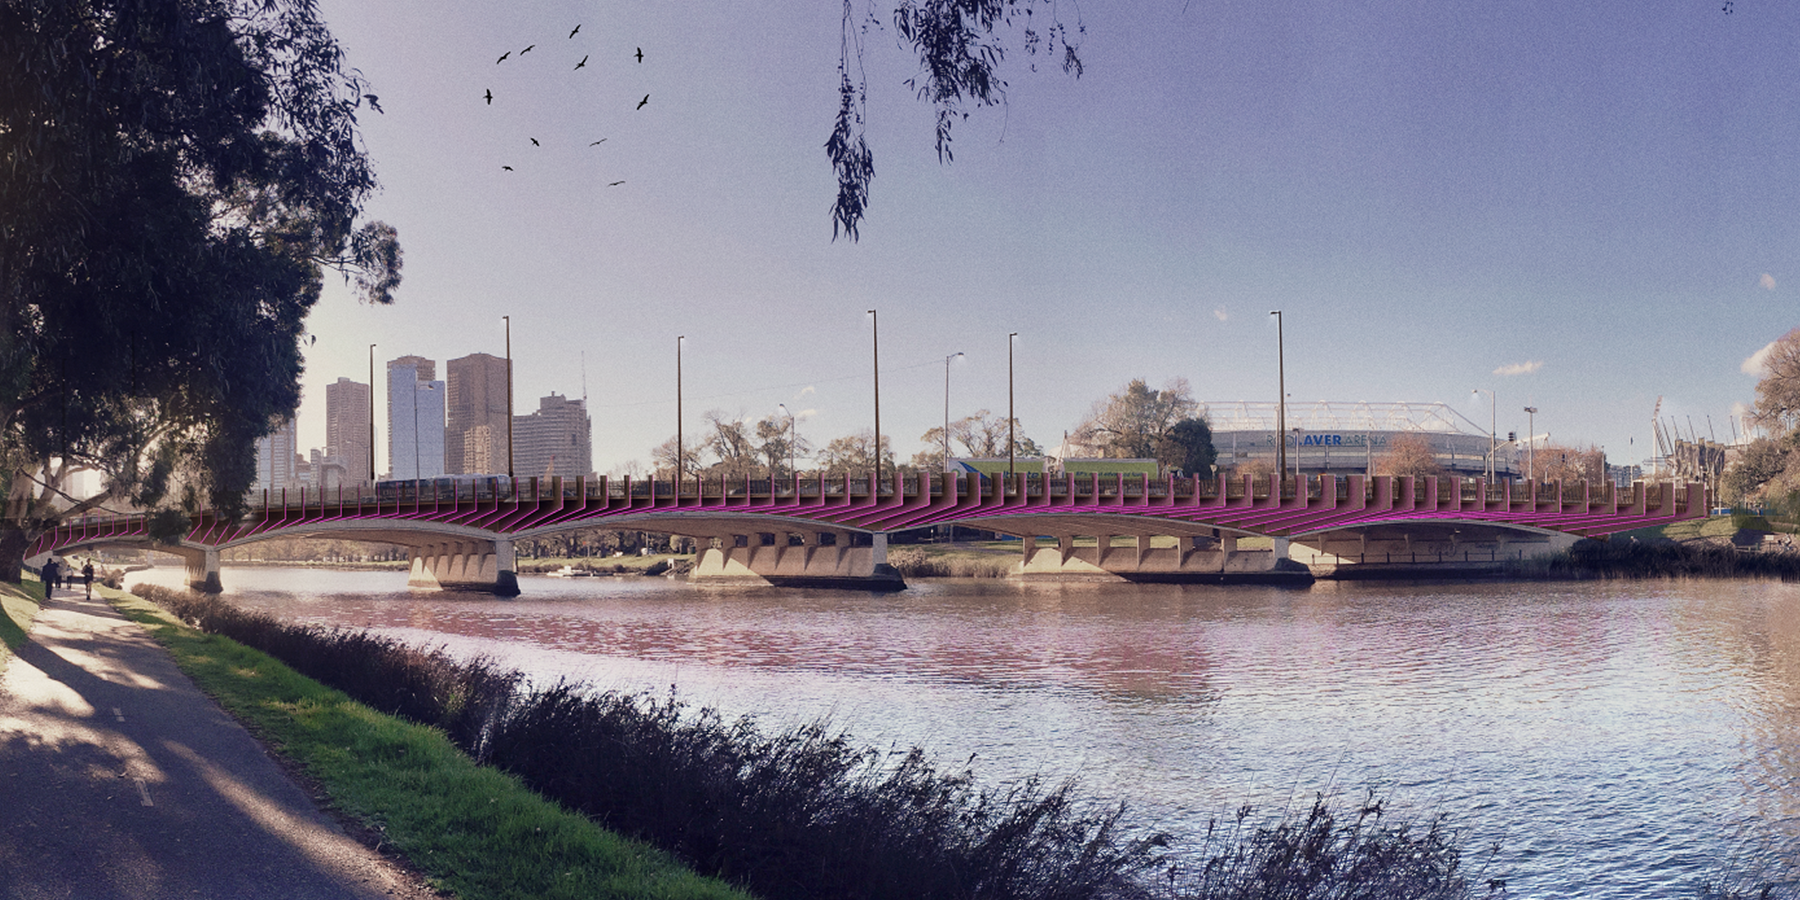 Seymour Whyte Wins 30m Swan Street Bridge Upgrade